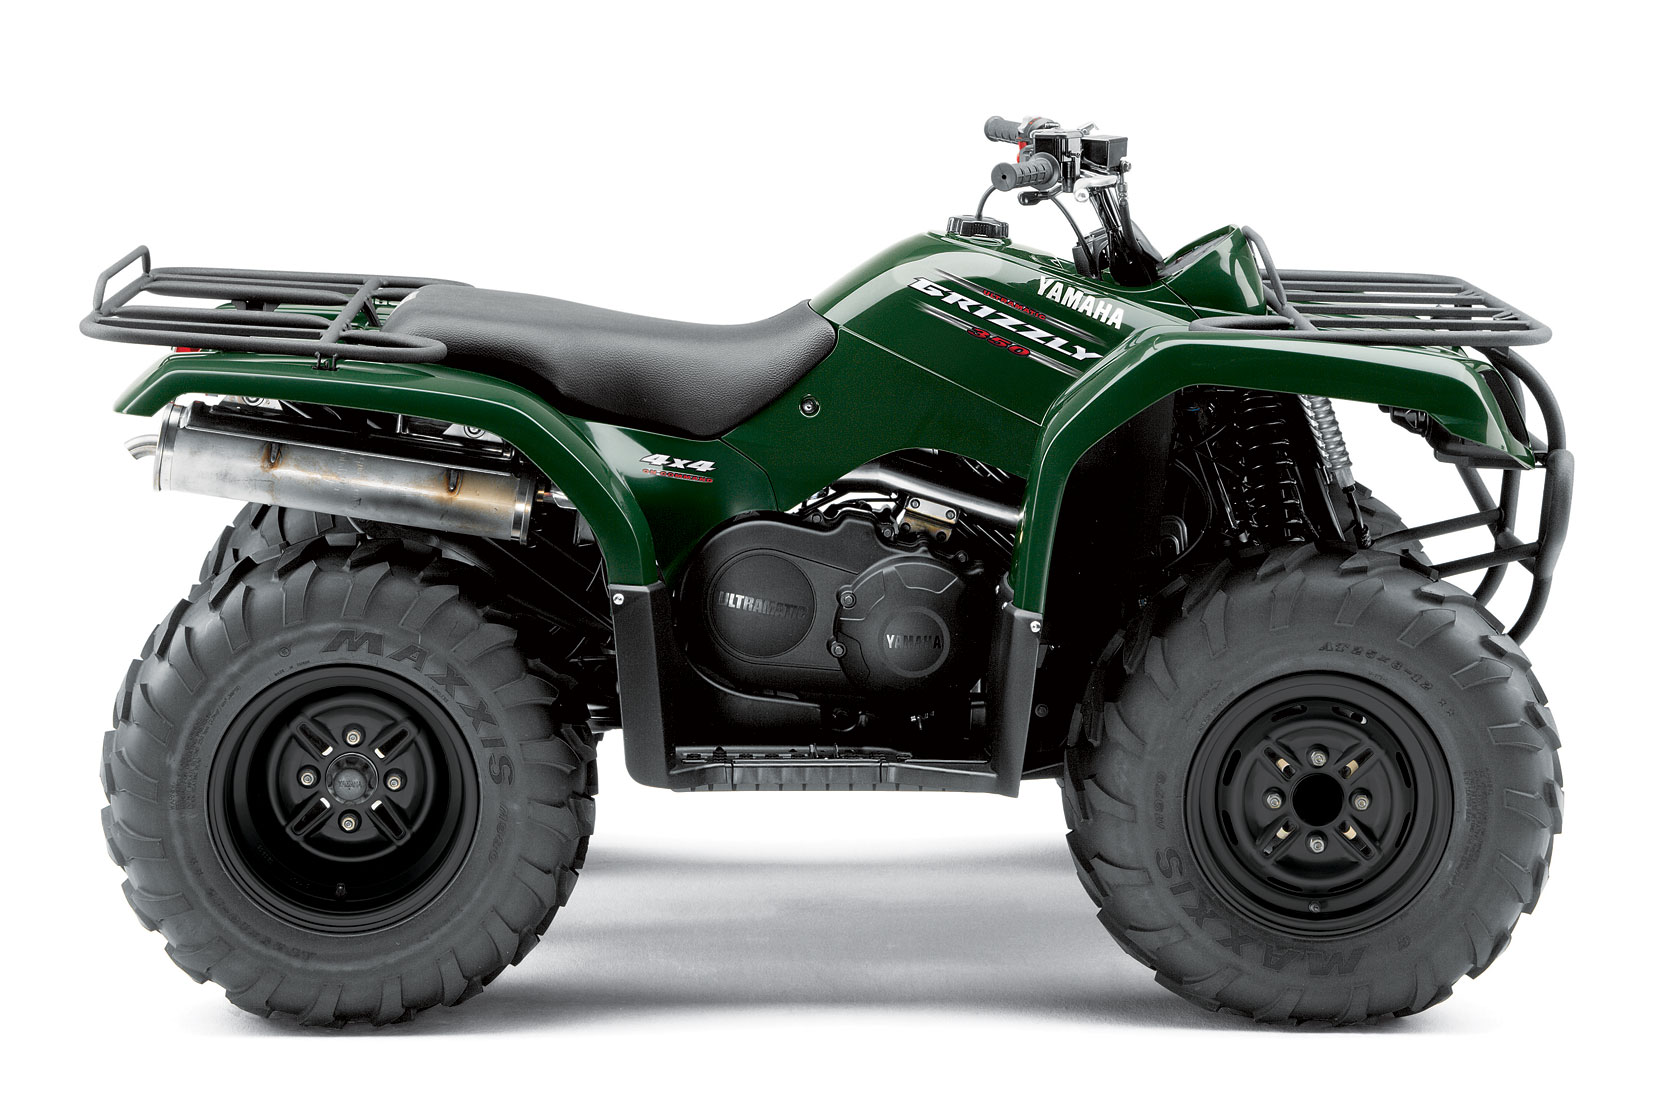 Yamaha grizzly 350 4x4 specs 2009 2010 autoevolution for Yamaha 350 4x4